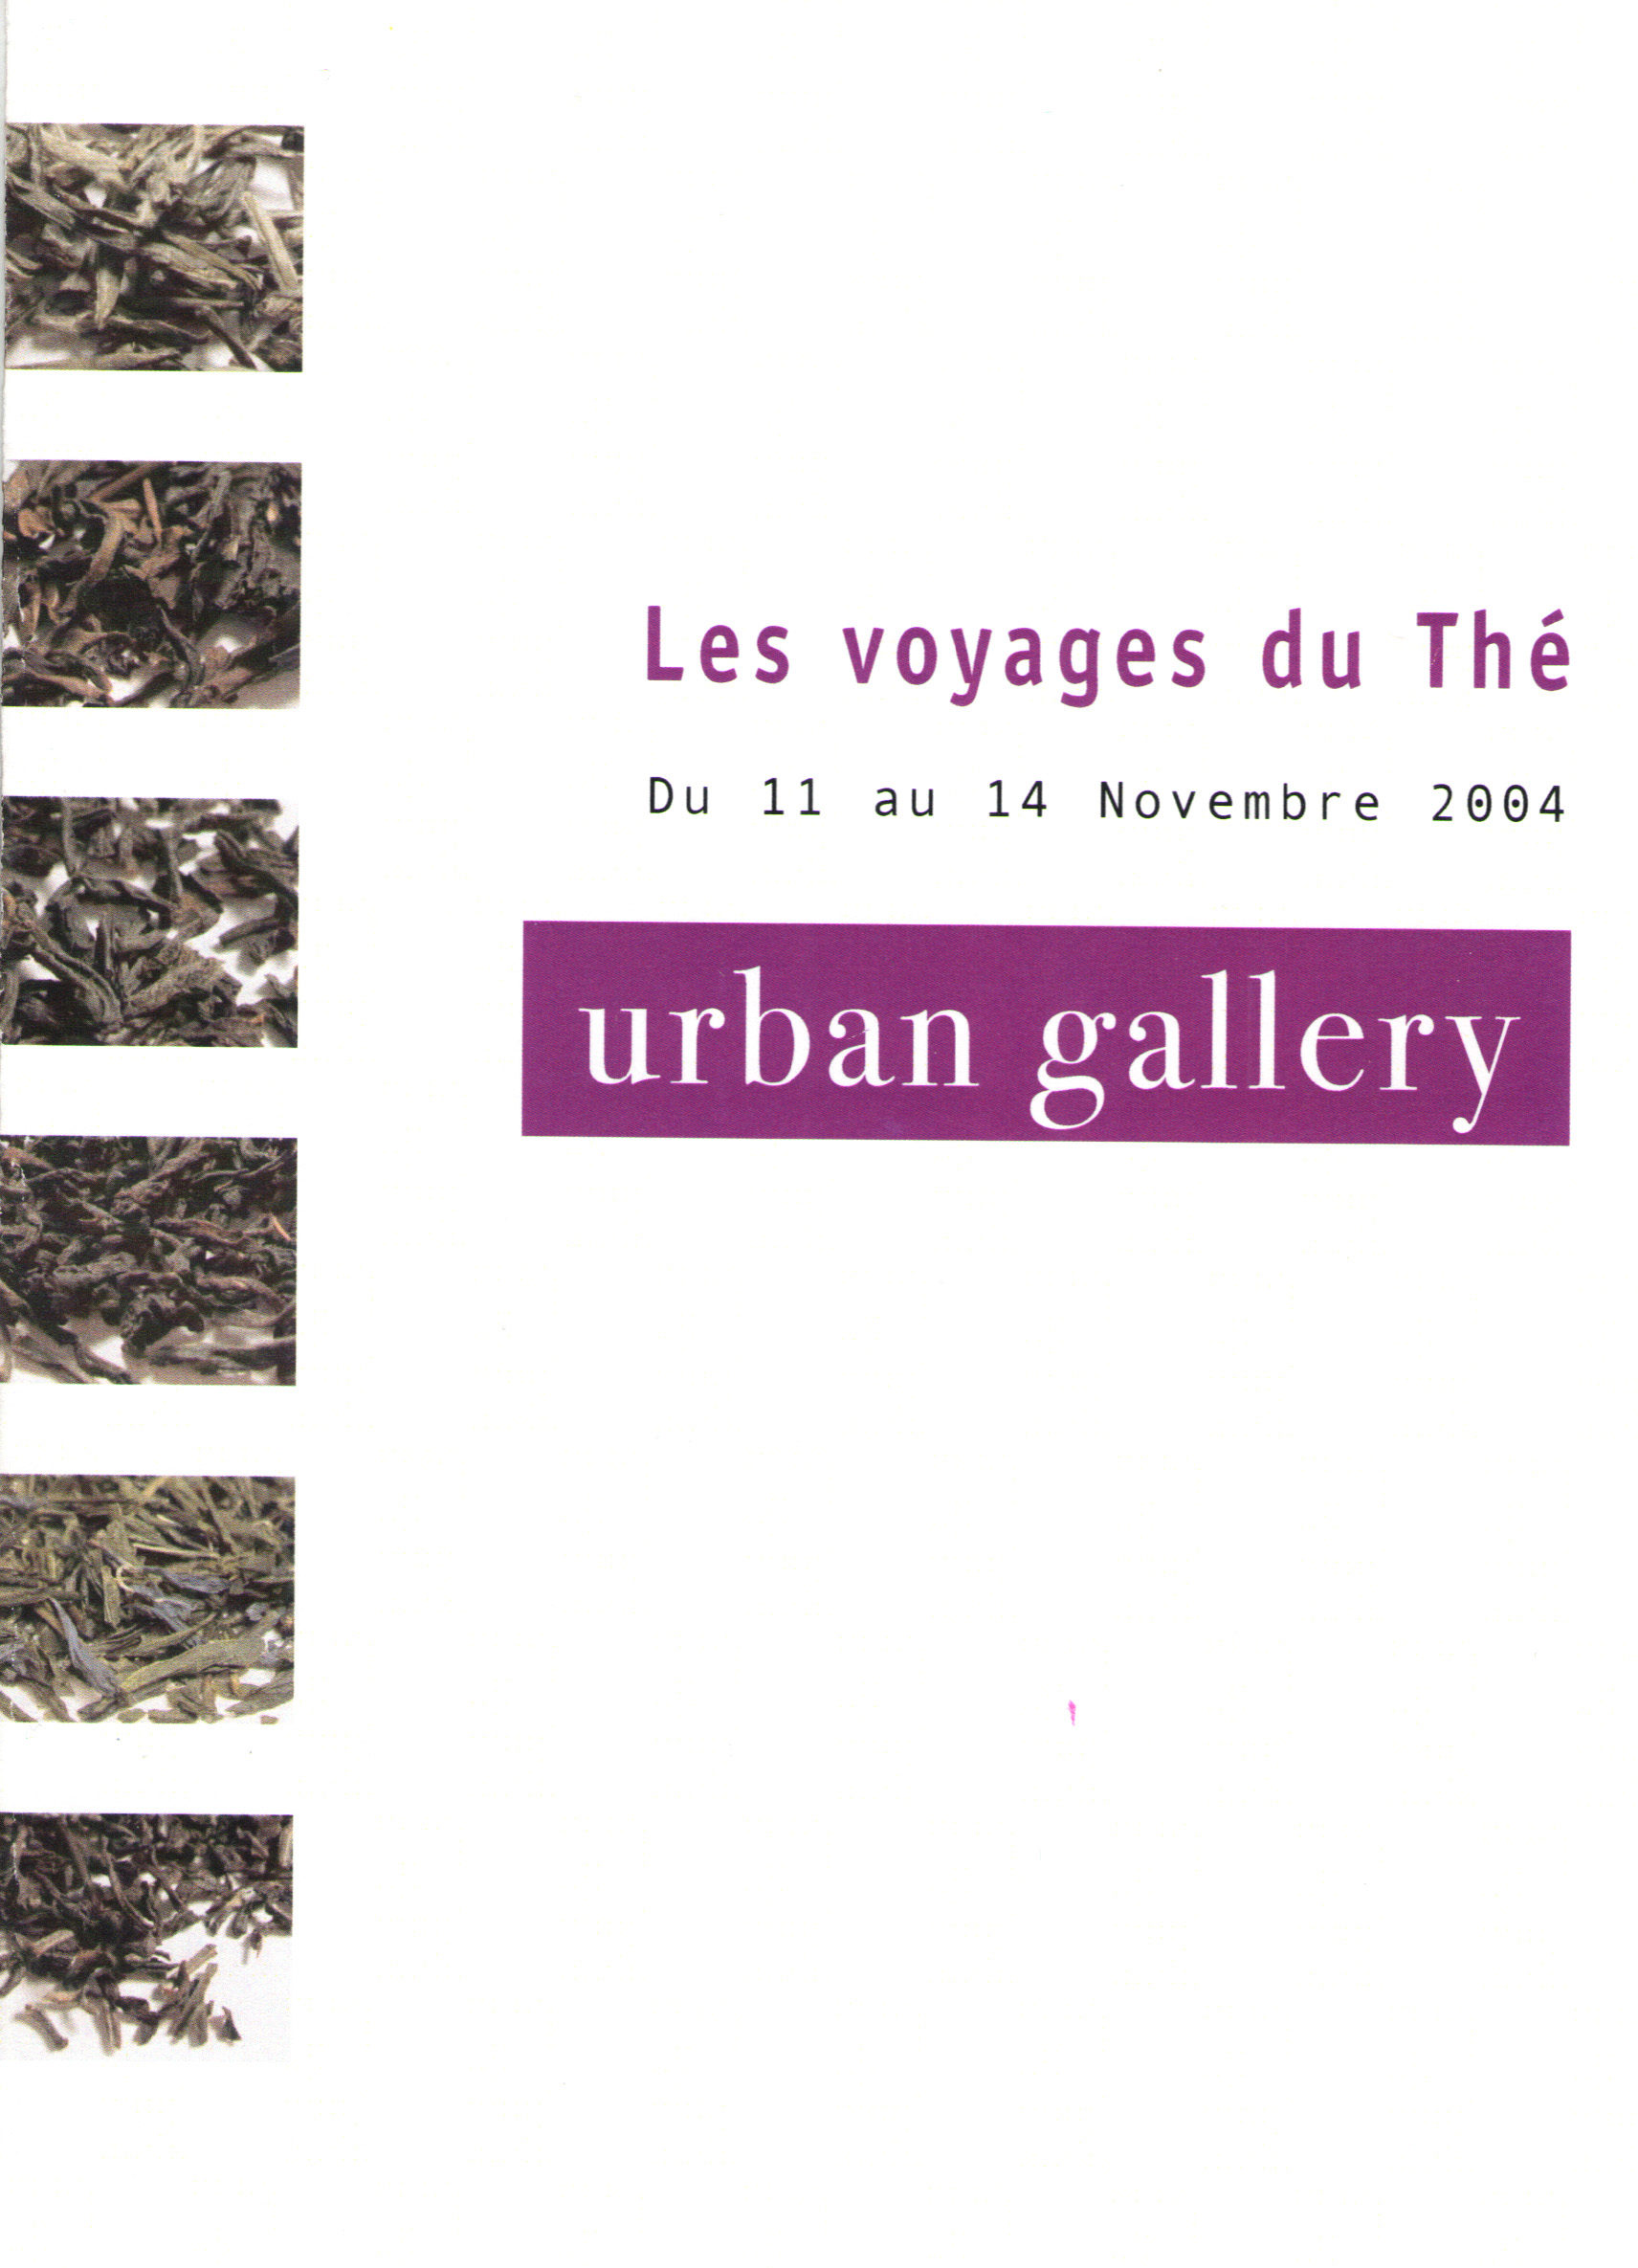 http://afrp.eu/wp-content/uploads/2020/05/20041111_14-voyages-du-the-razvorot-scaled.jpg